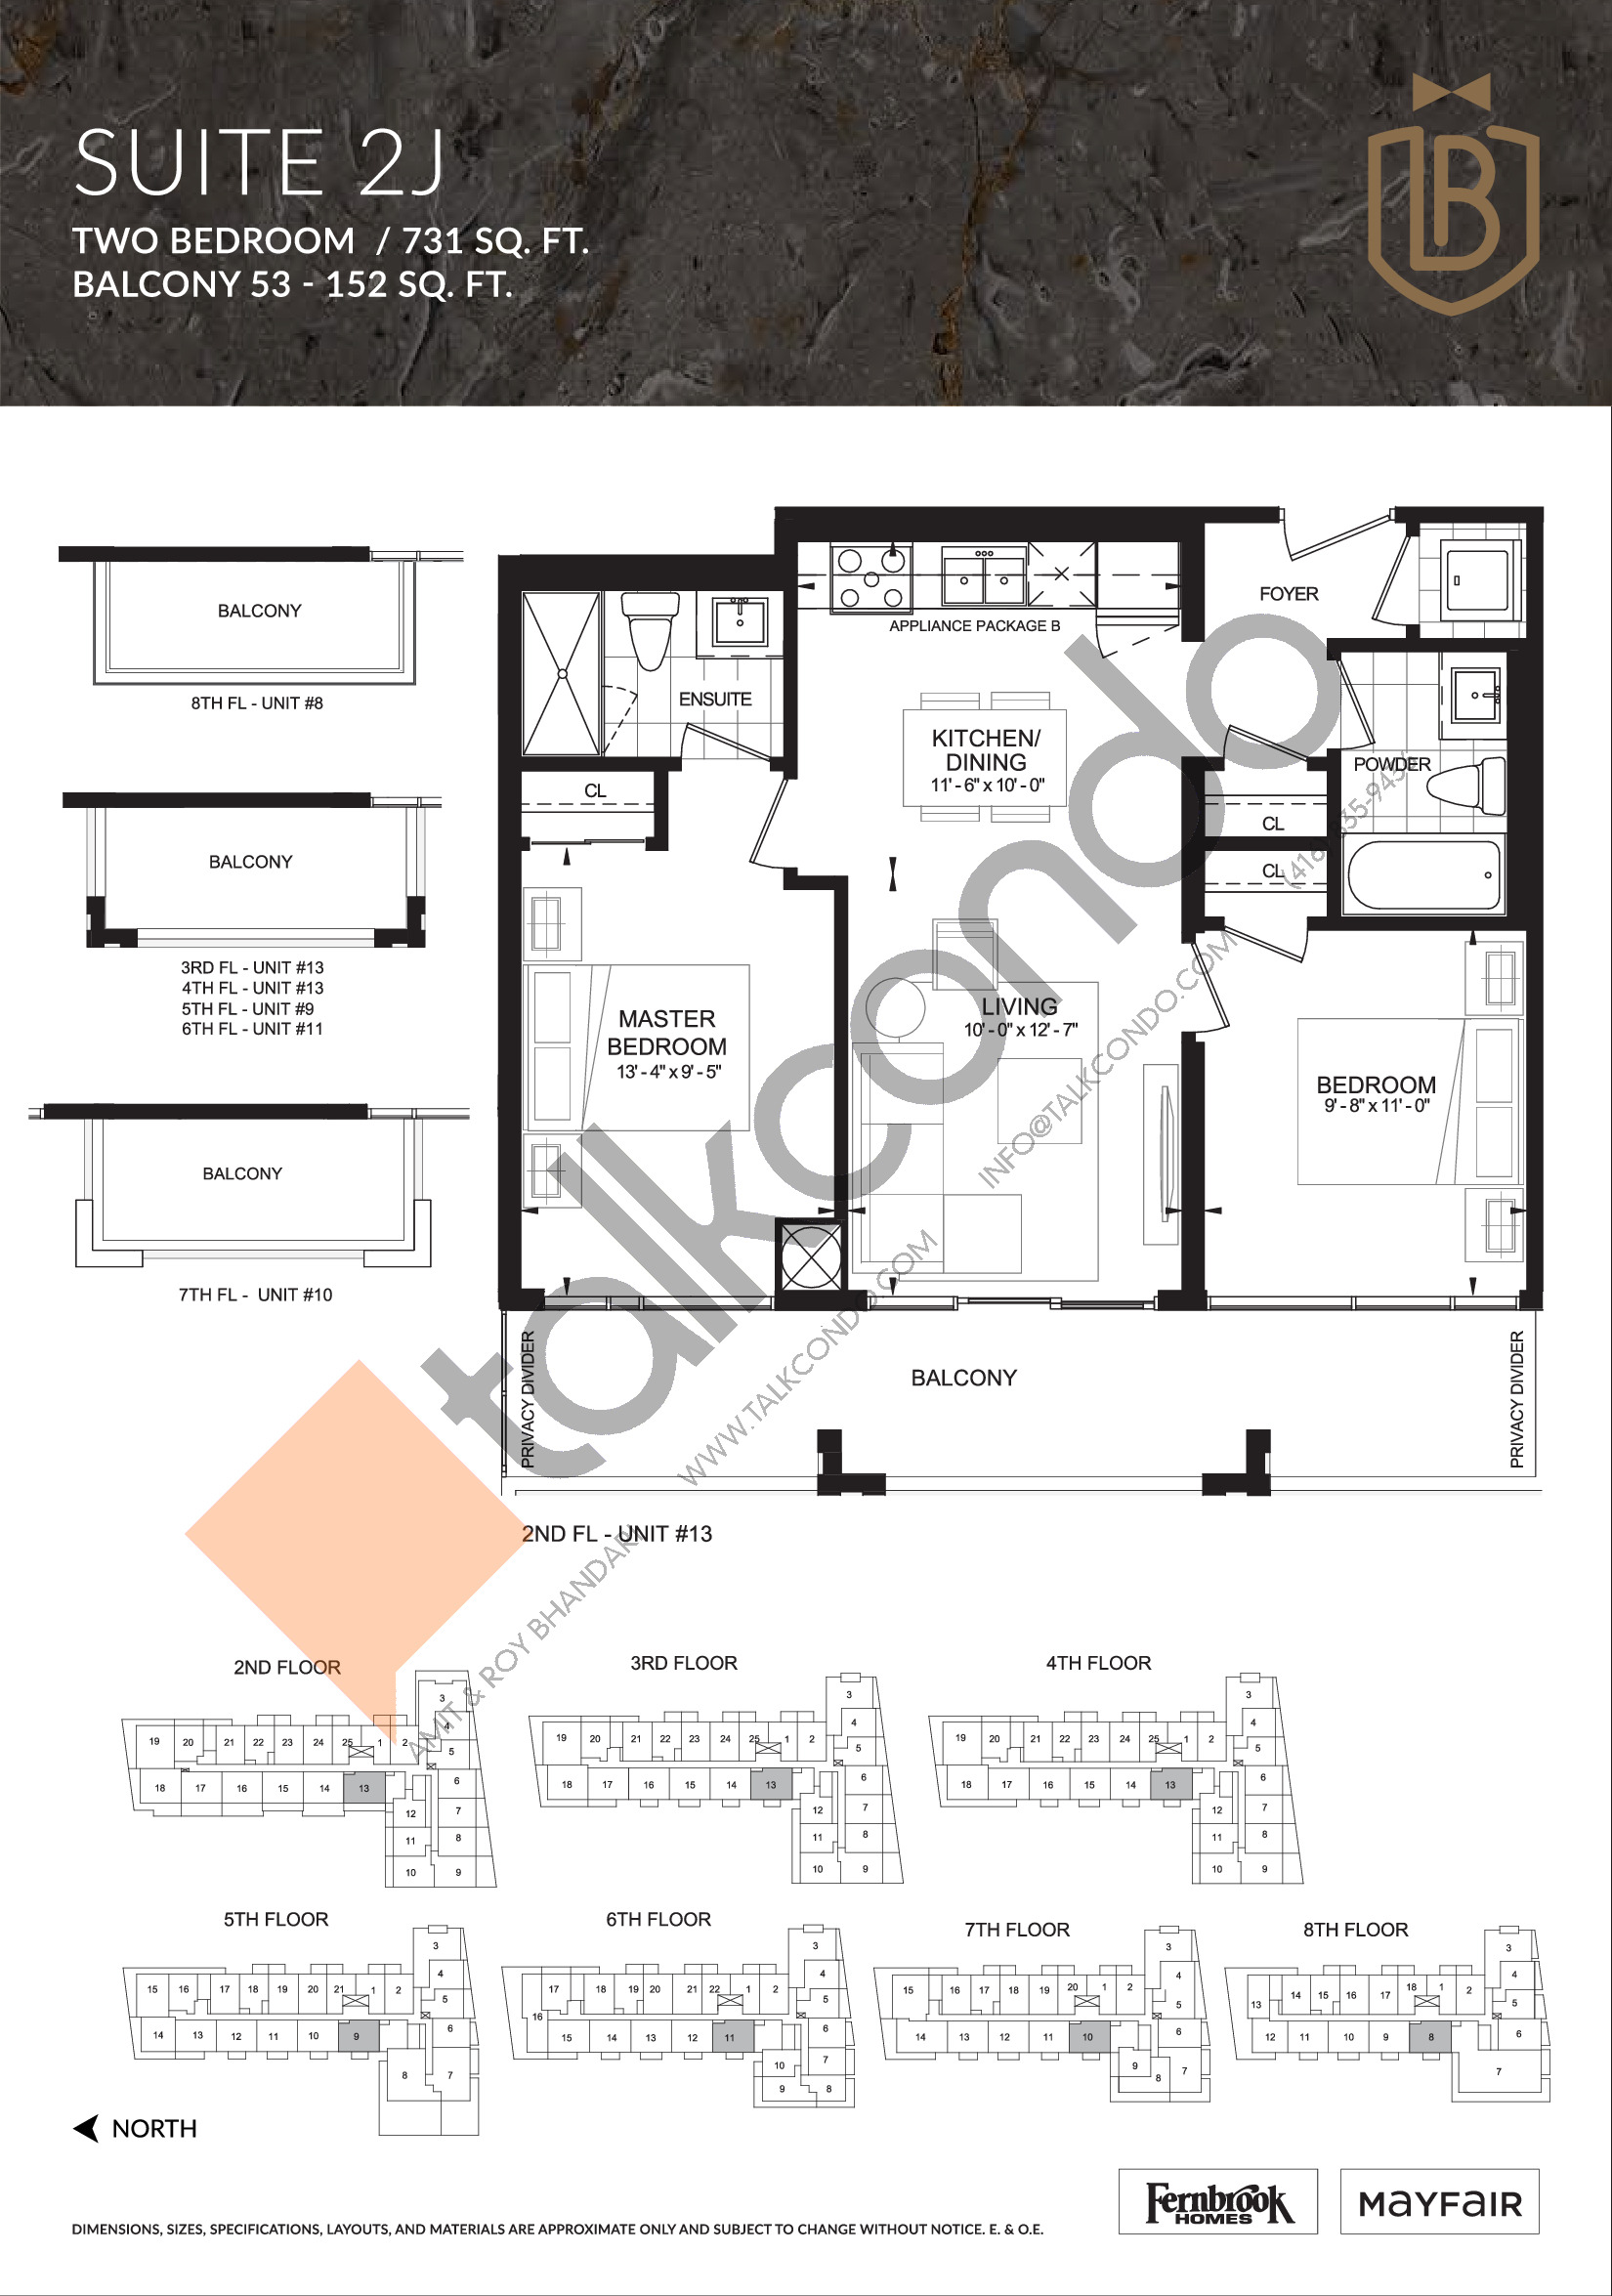 Suite 2J Floor Plan at The Butler Condos - 731 sq.ft